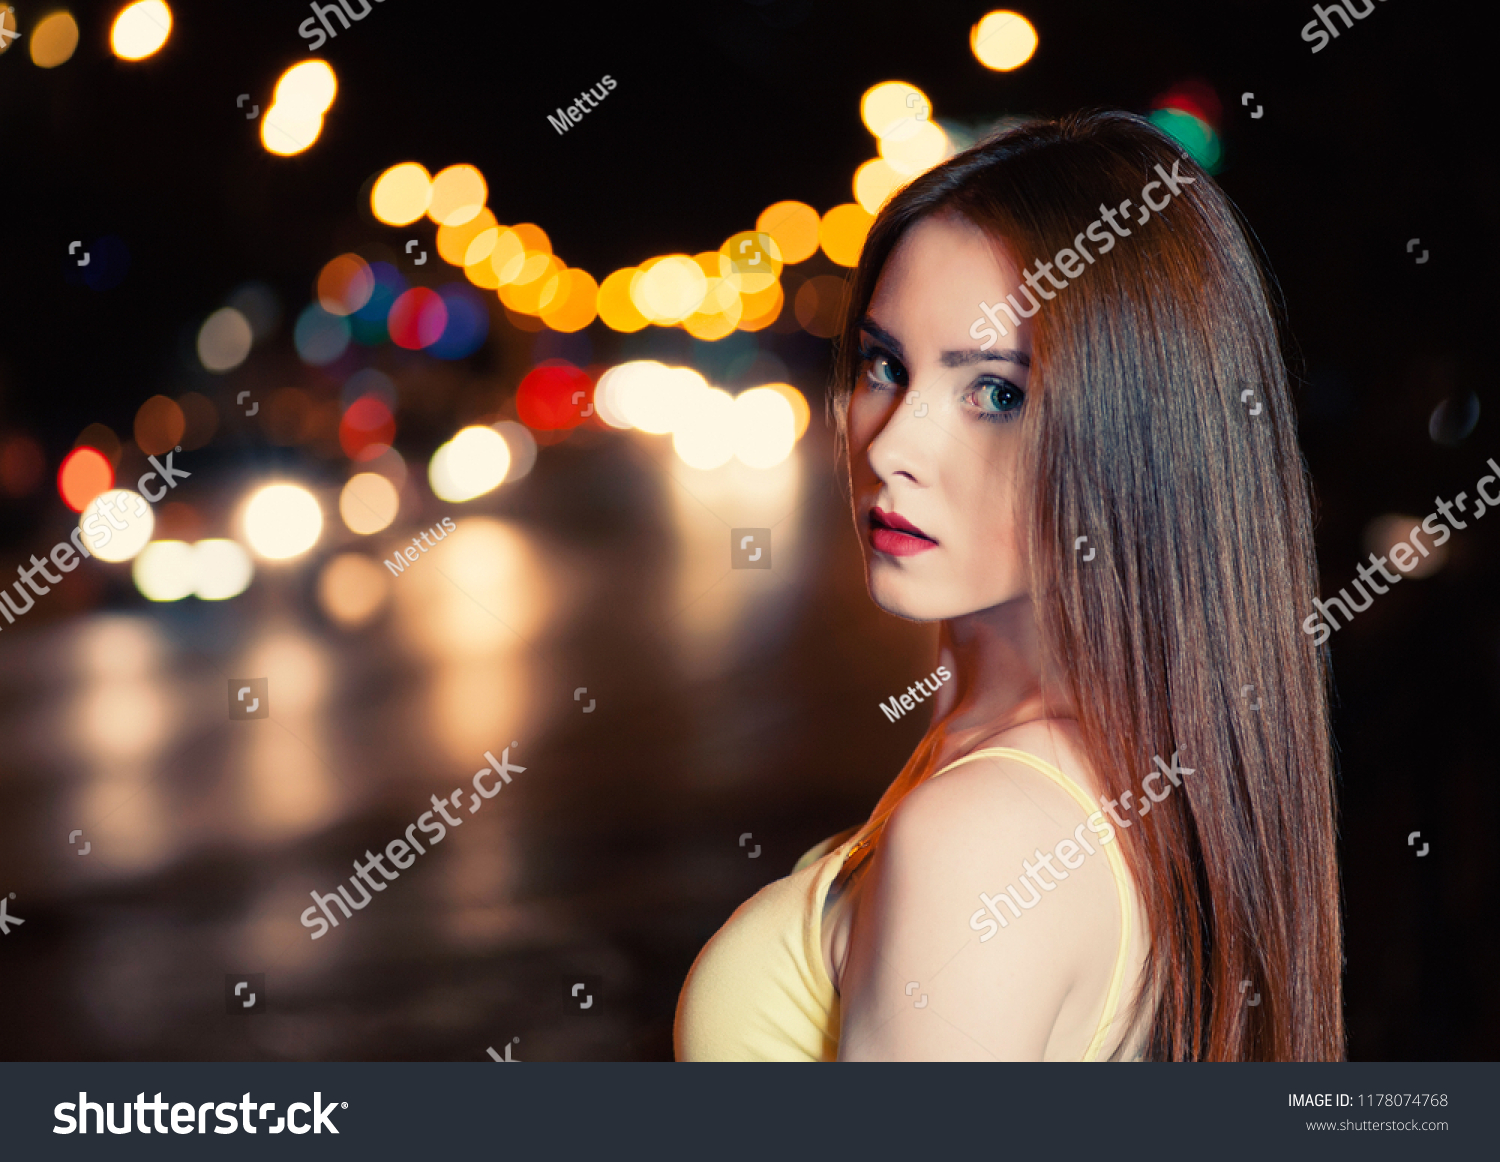 Beautiful girl on blurred carlights background with copyspace. Young women in night street. Defocused carlights.